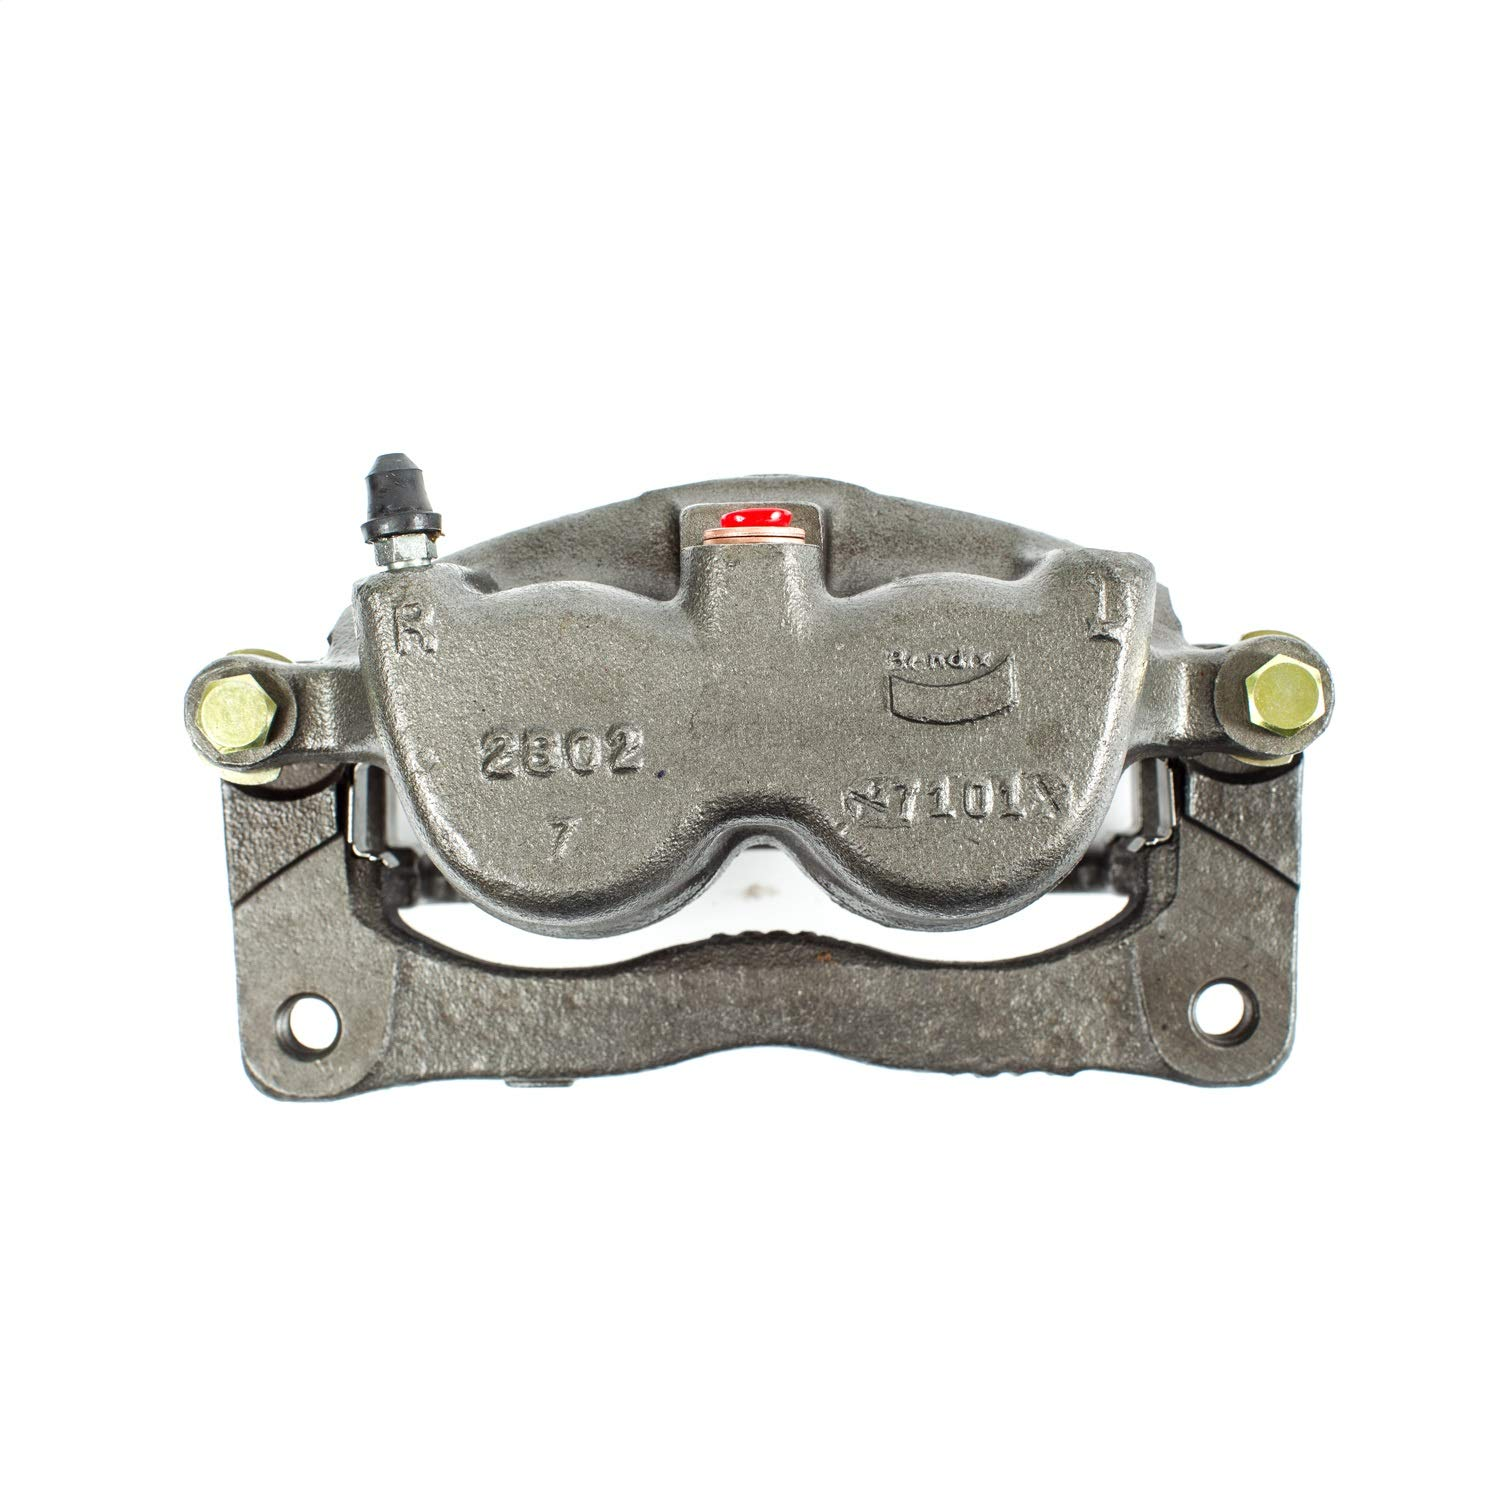 Power Stop L4778 Autospecialty Remanufactured Caliper